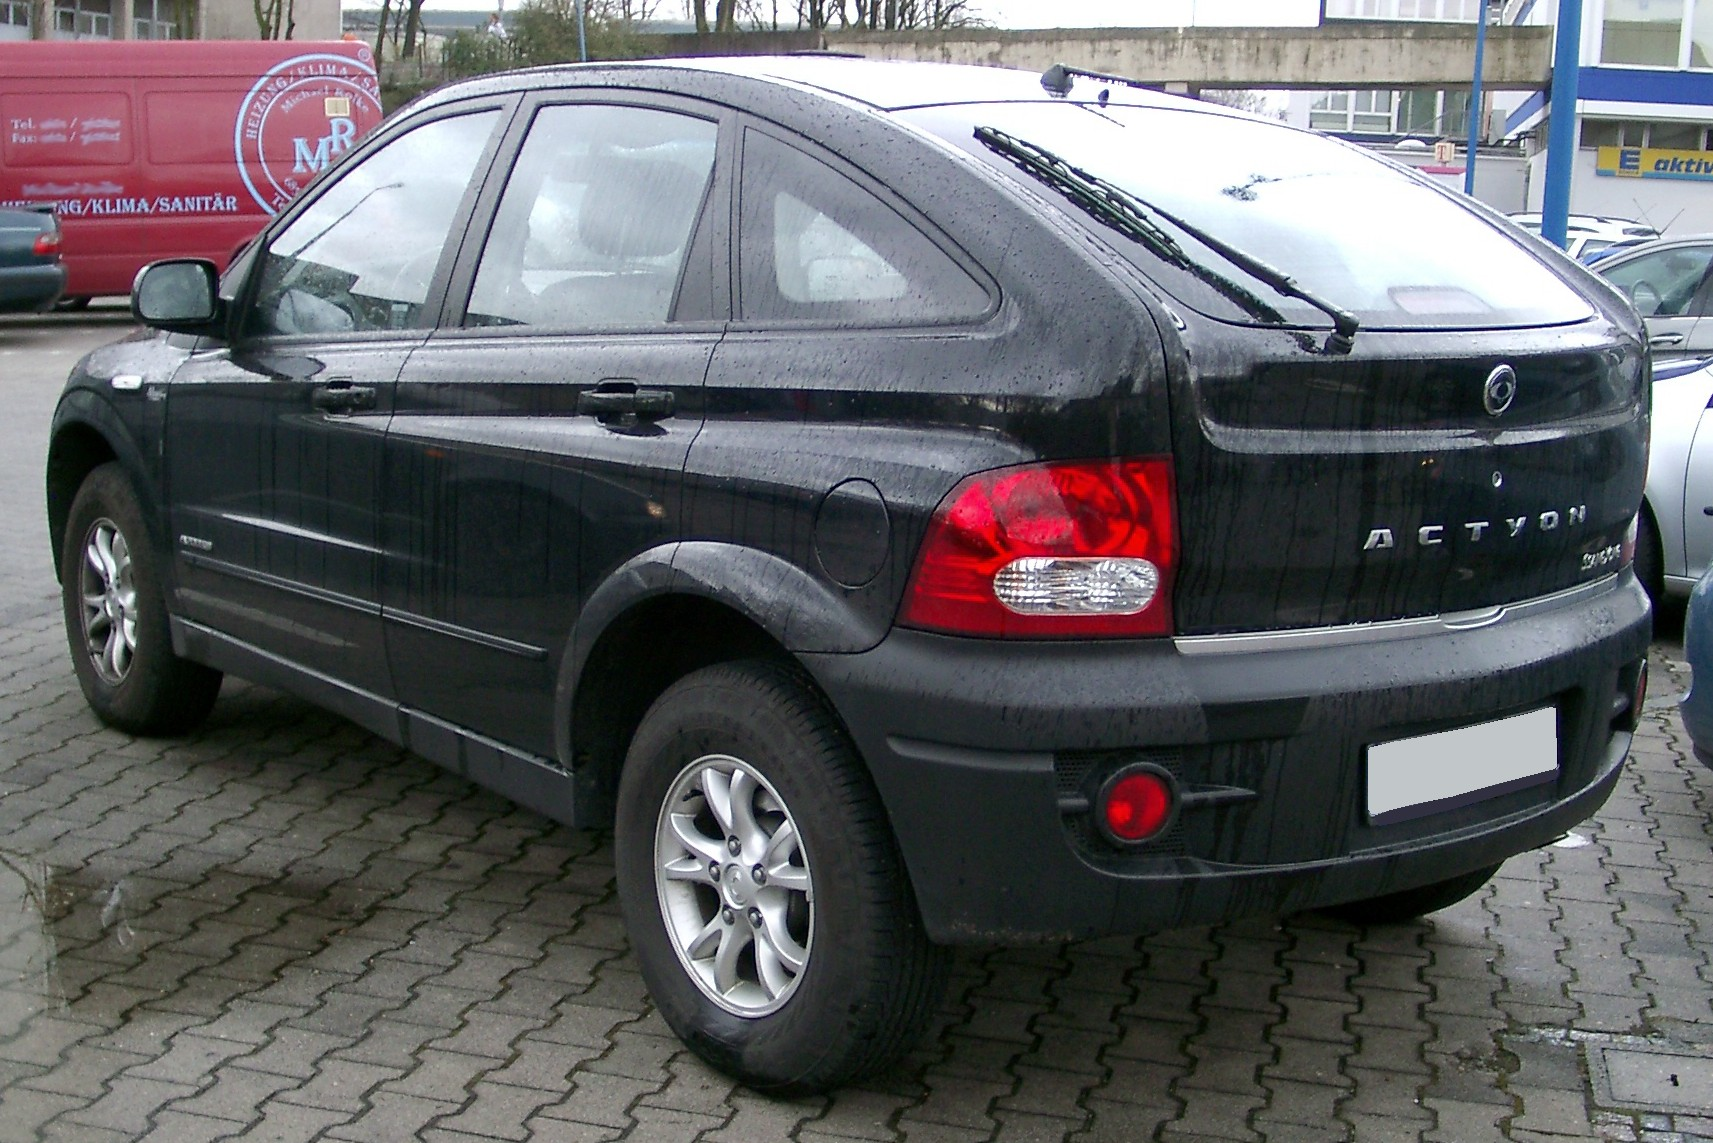 ssangyong actyon 2007 images